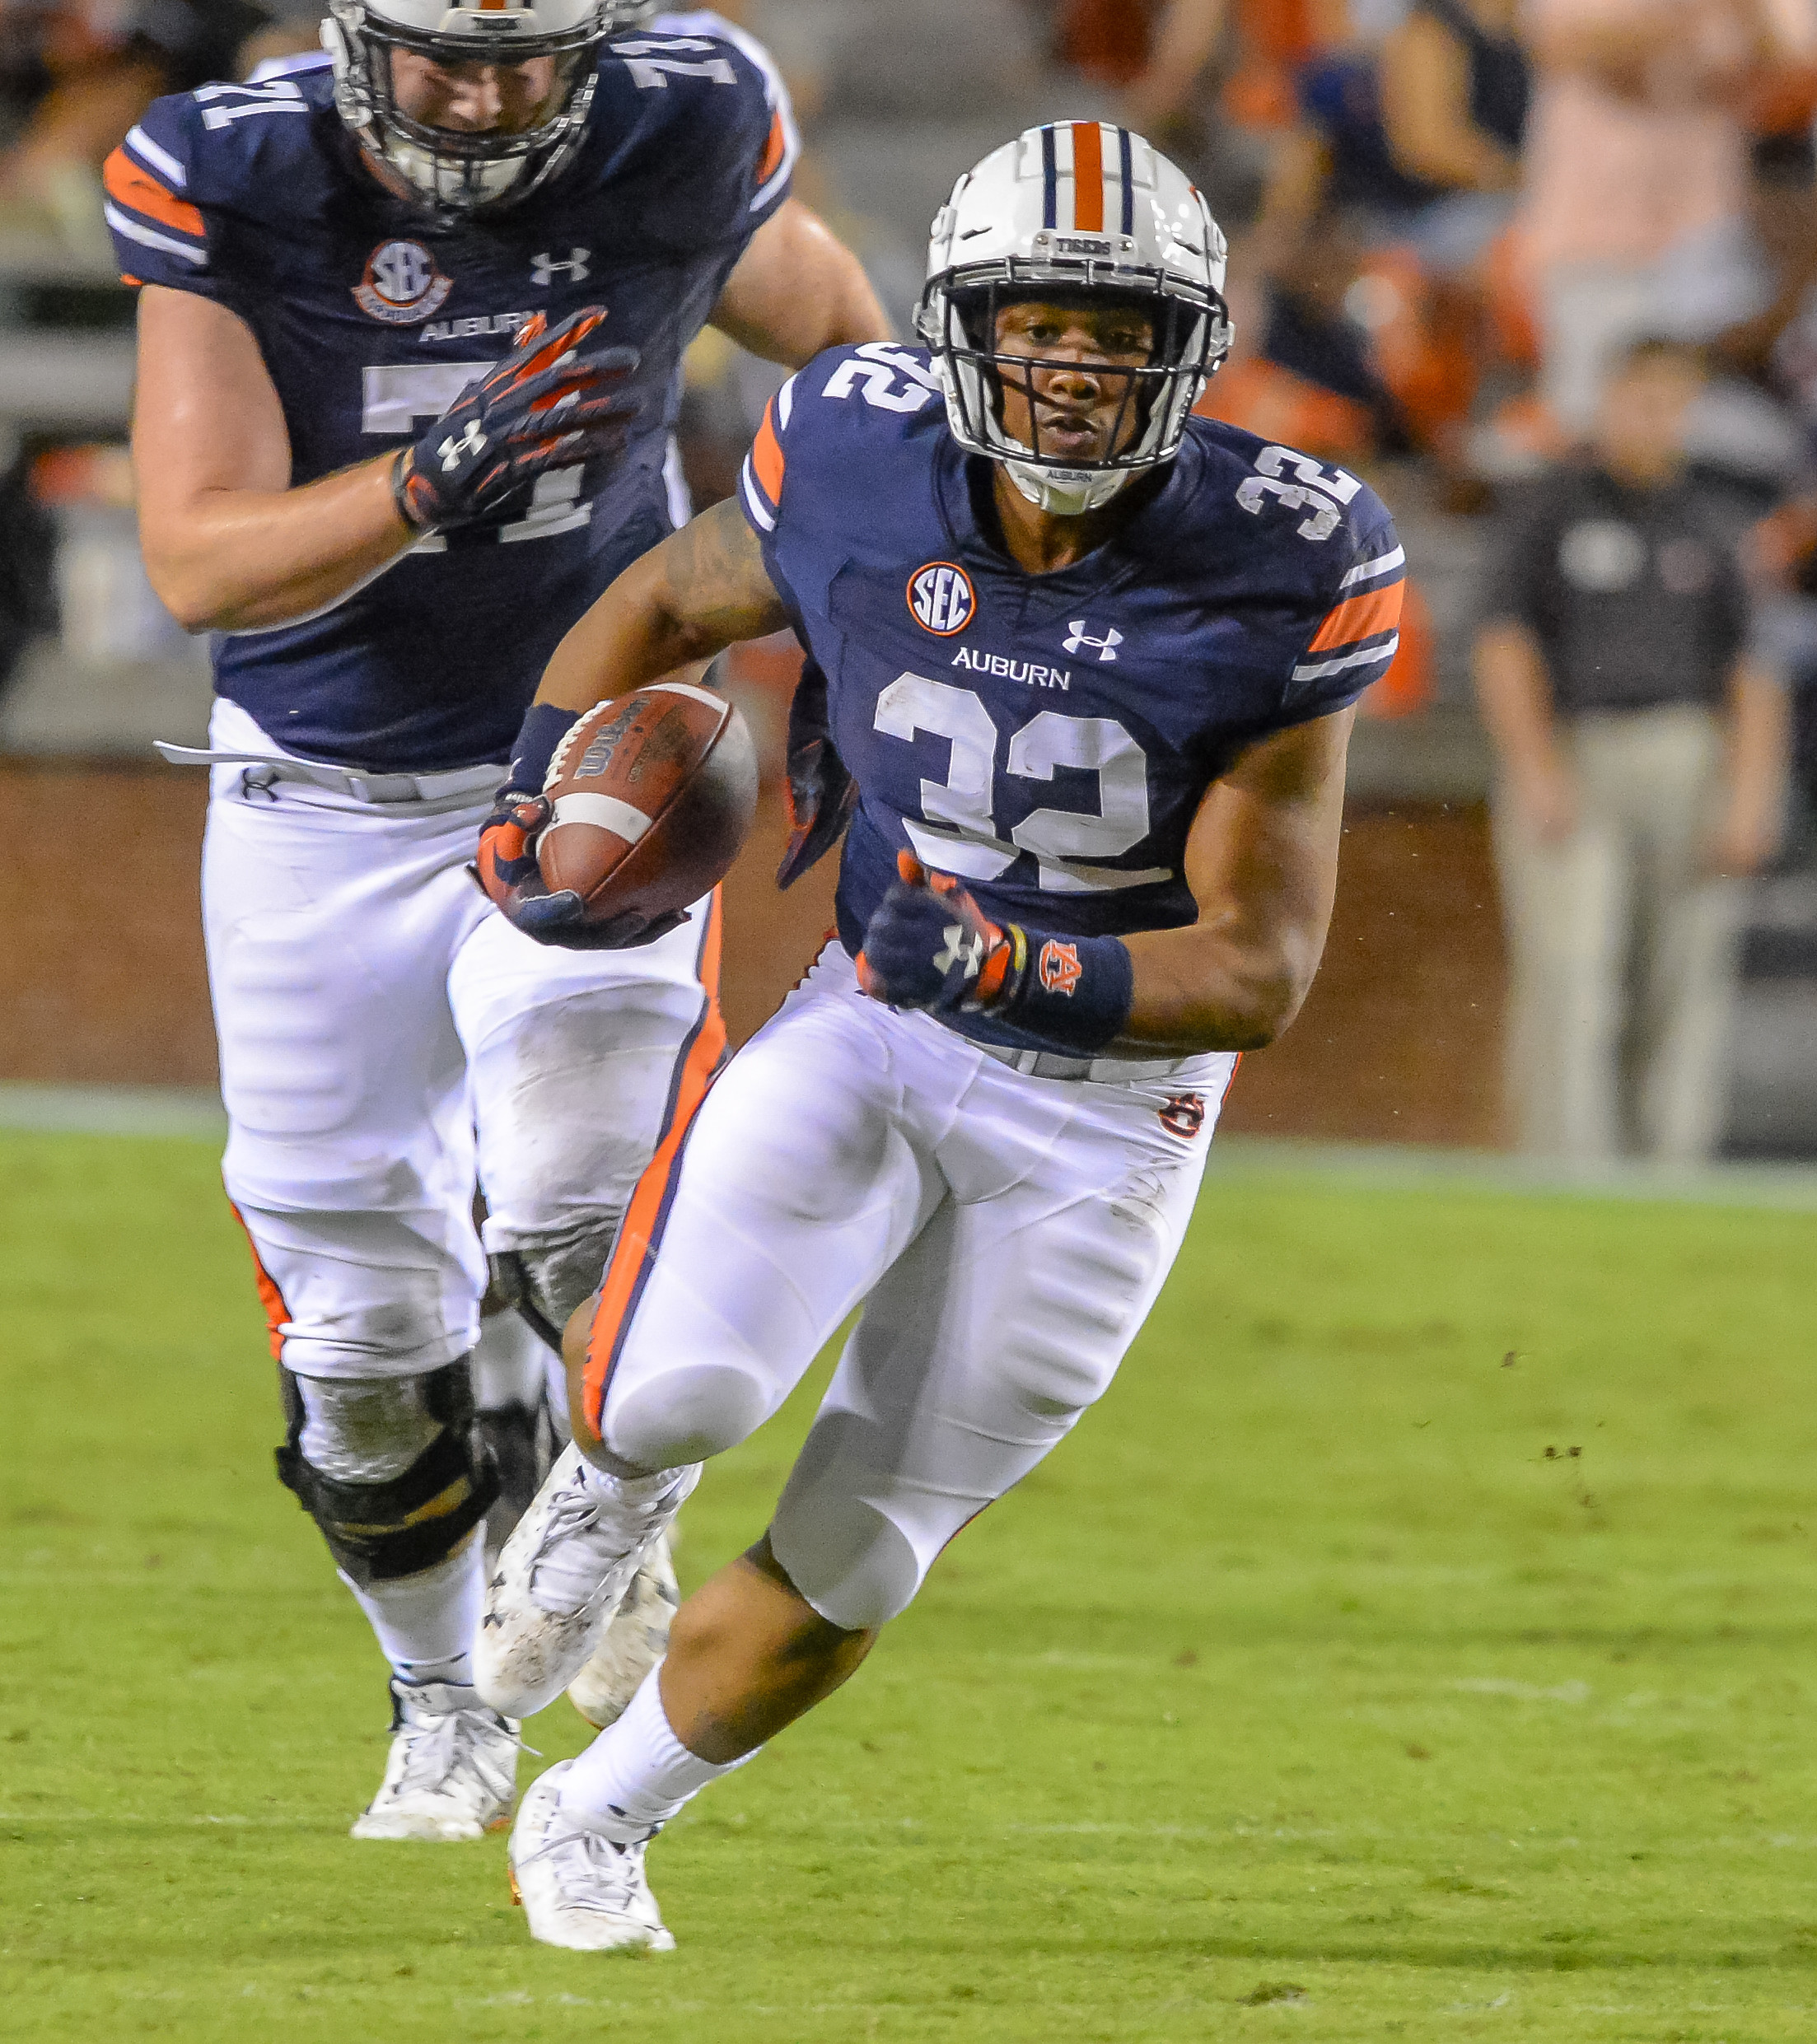 Auburn Tigers running back Malik Miller (32) runs during the second half of Saturday's game, at Jordan Hare Stadium in Auburn AL. Daily Mountain Eagle -  Jeff Johnsey